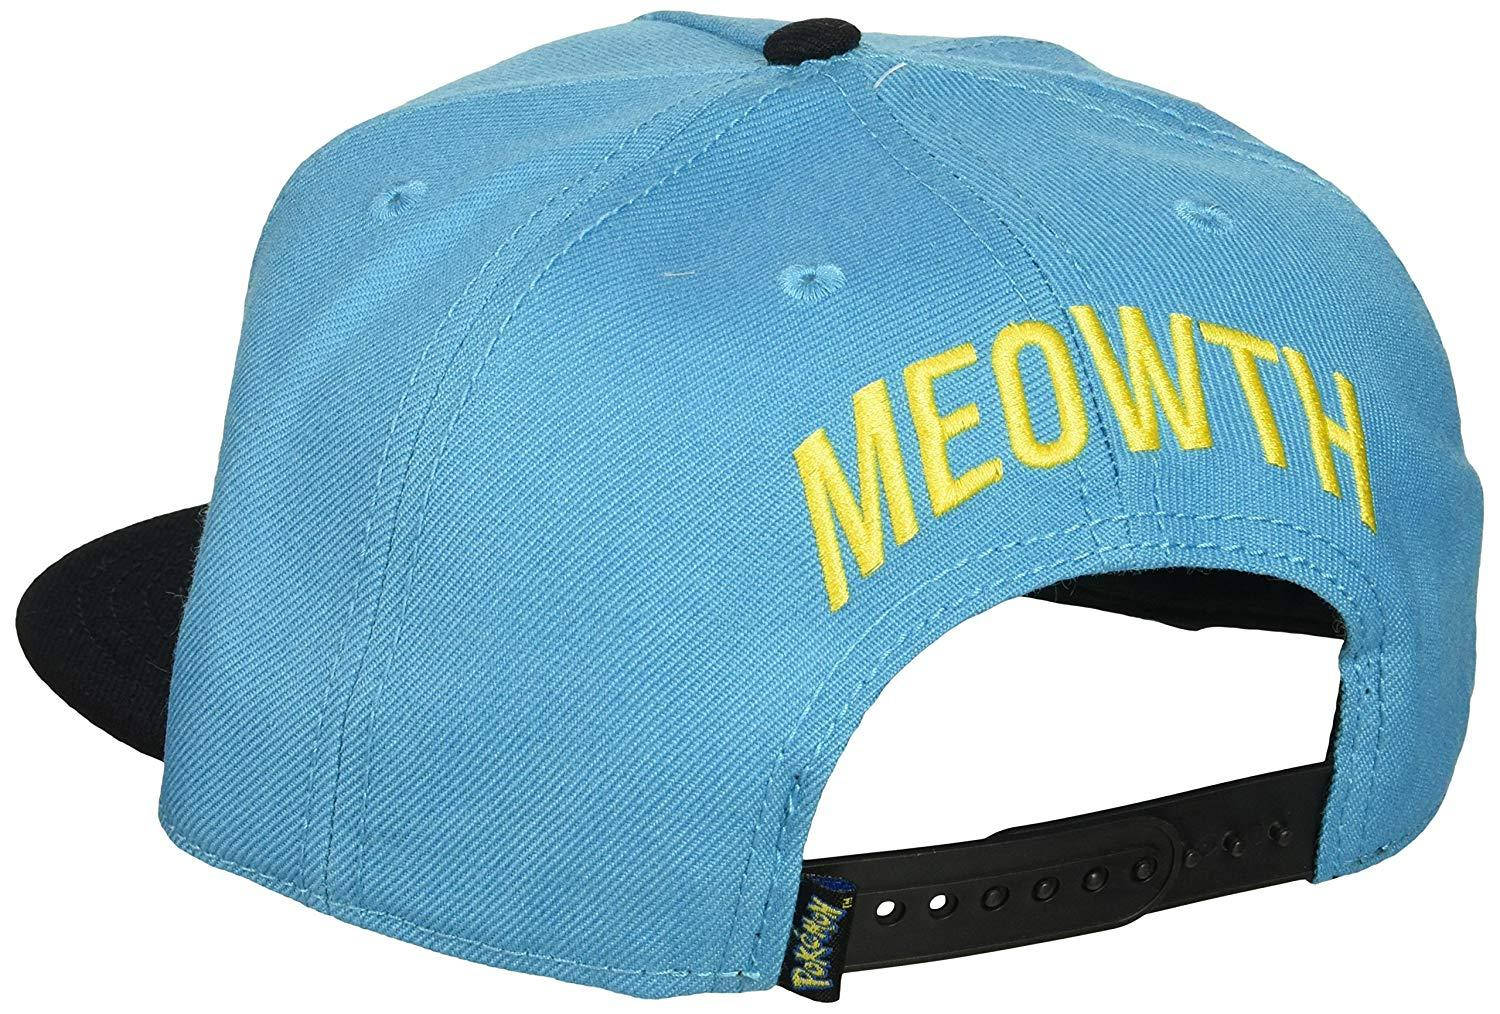 cddaf5a2b02ac0 Pokemon - Meowth Embroidered Turquoise Snapback - Dood Gear